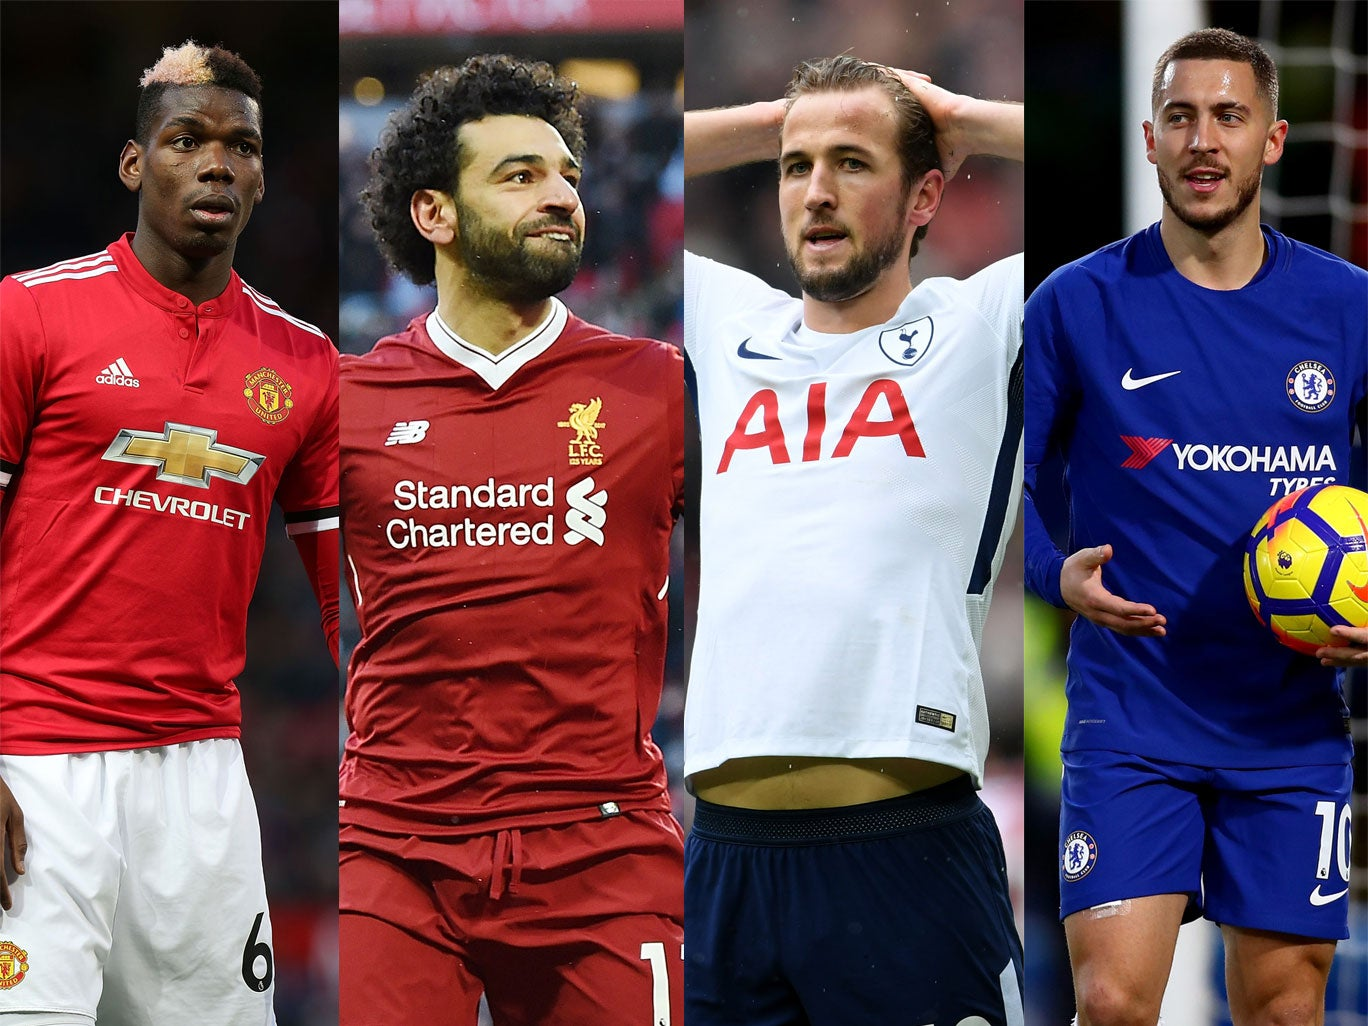 Premier League top-four race: Who has the best run-in? Manchester United, Liverpool, Spurs or Chelsea?